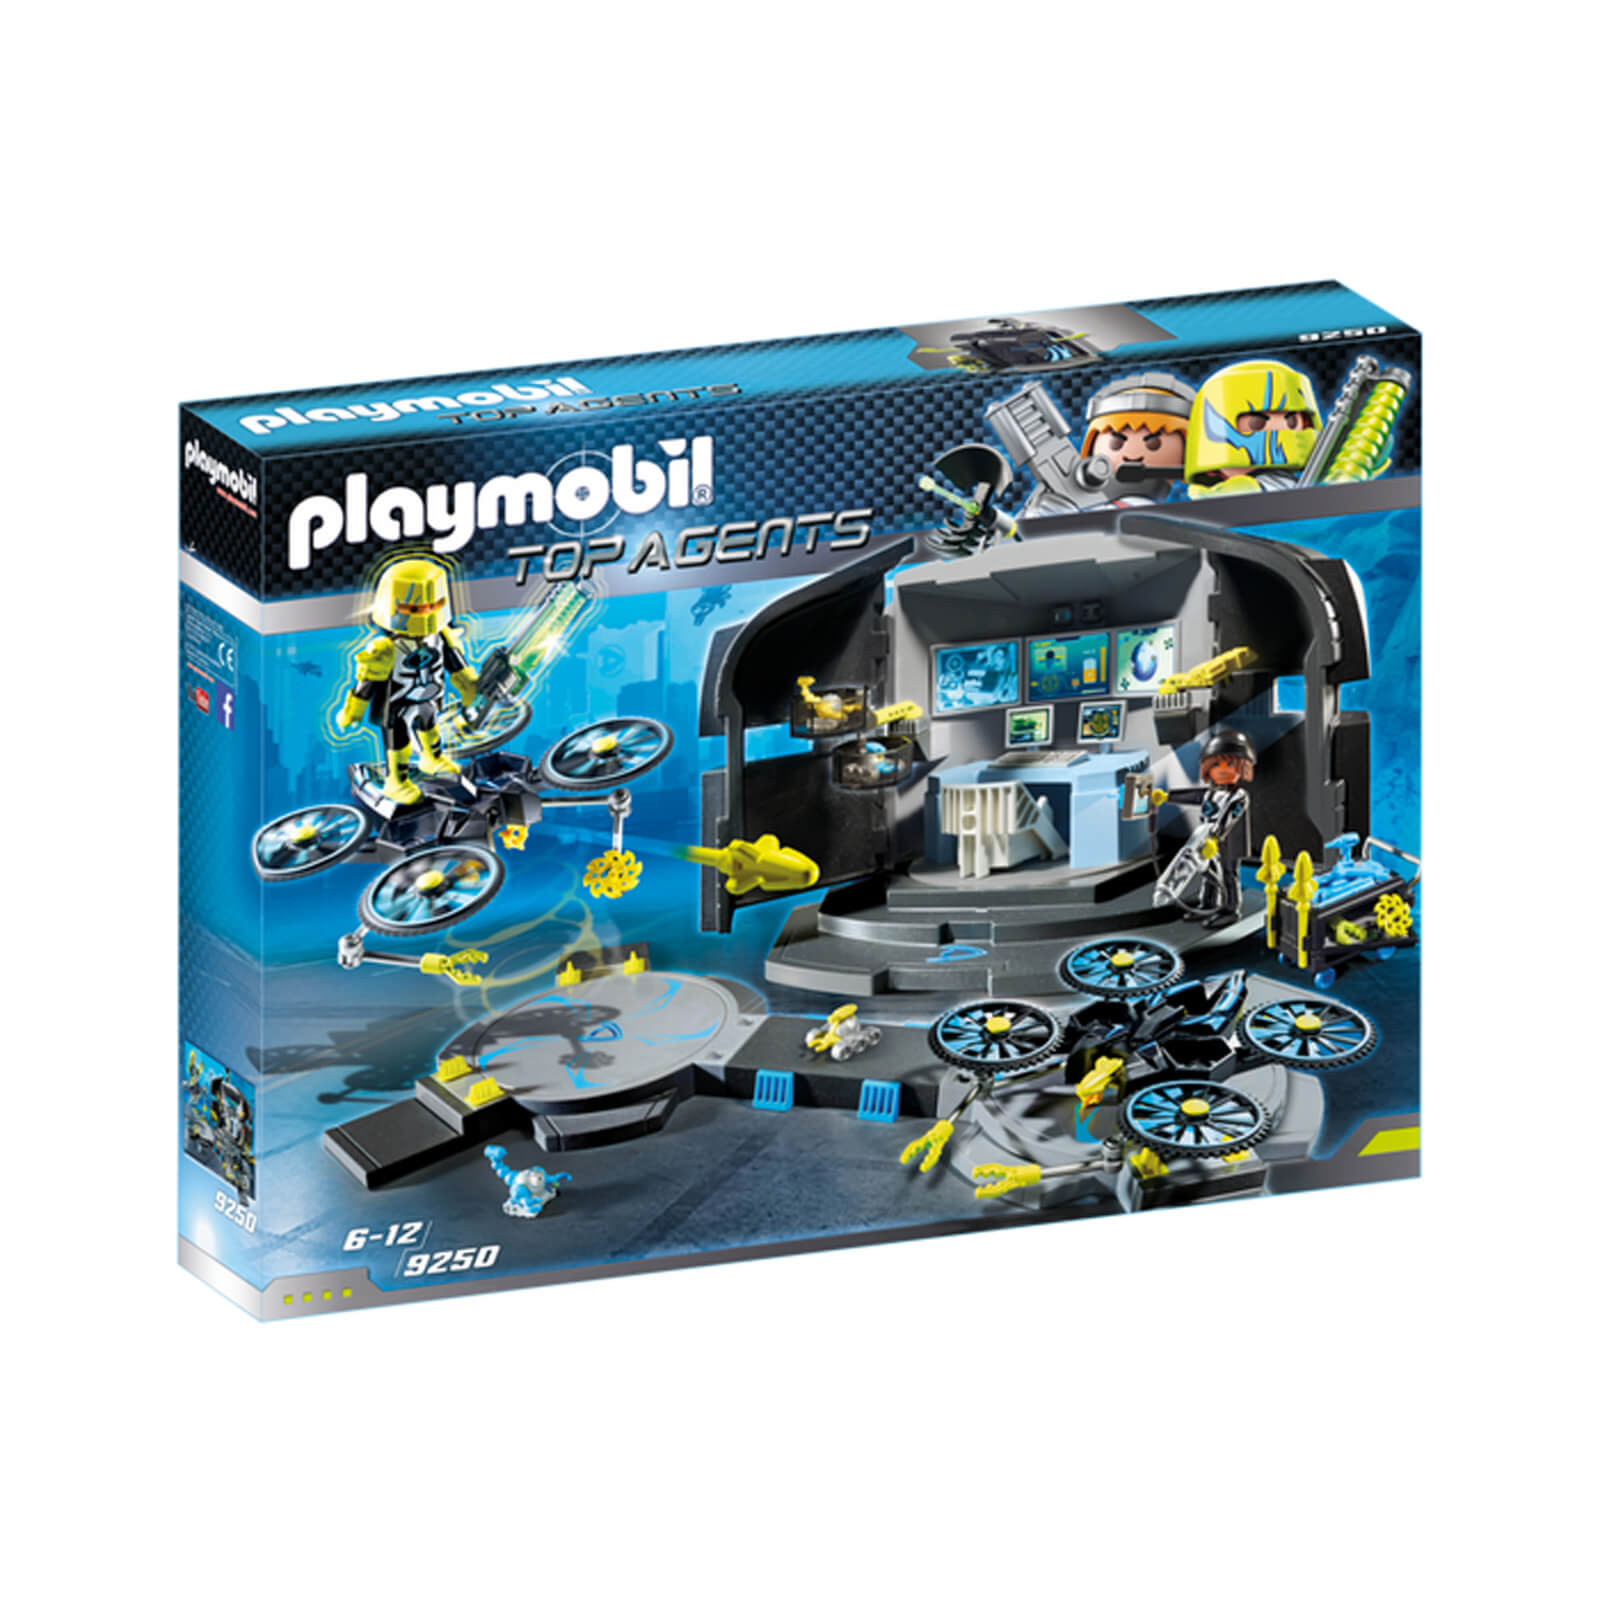 Playmobil Top Agents Dr. Drones Command Base (9250)